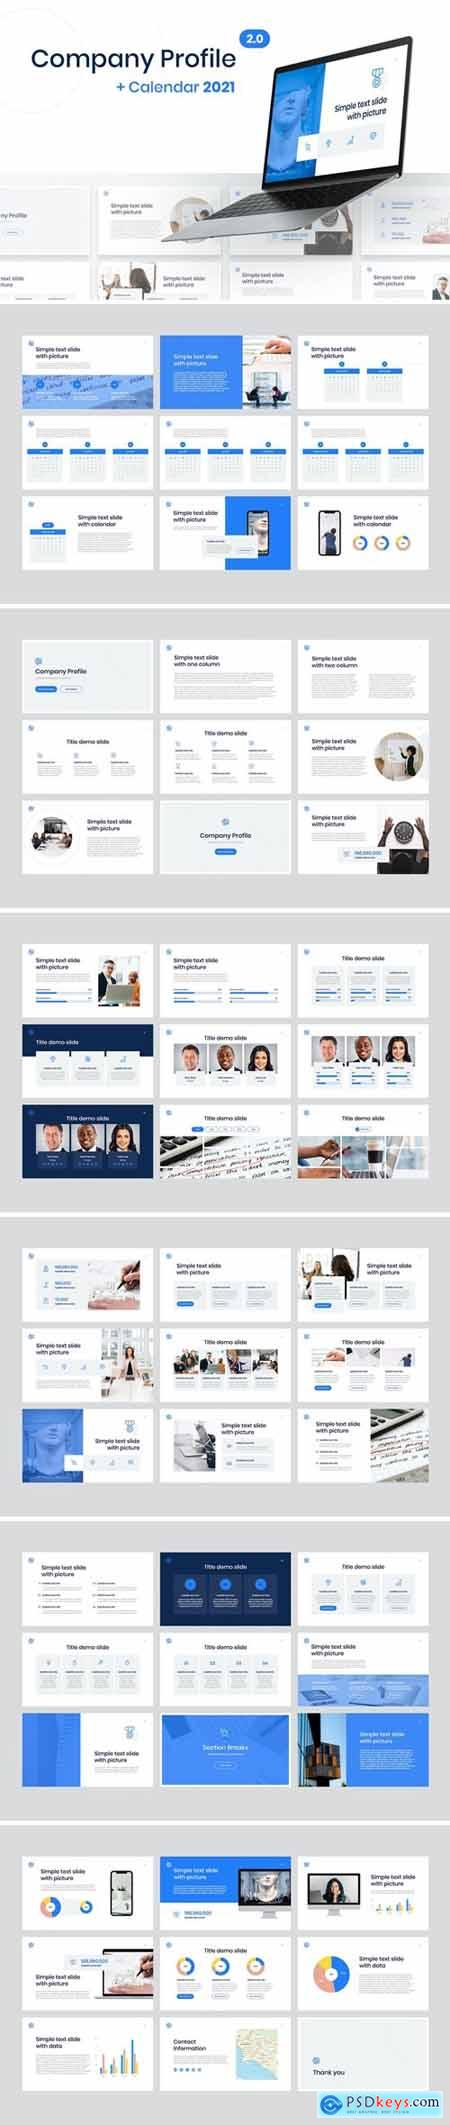 Company Profile Powerpoint, Keynote and Google Slides Templates